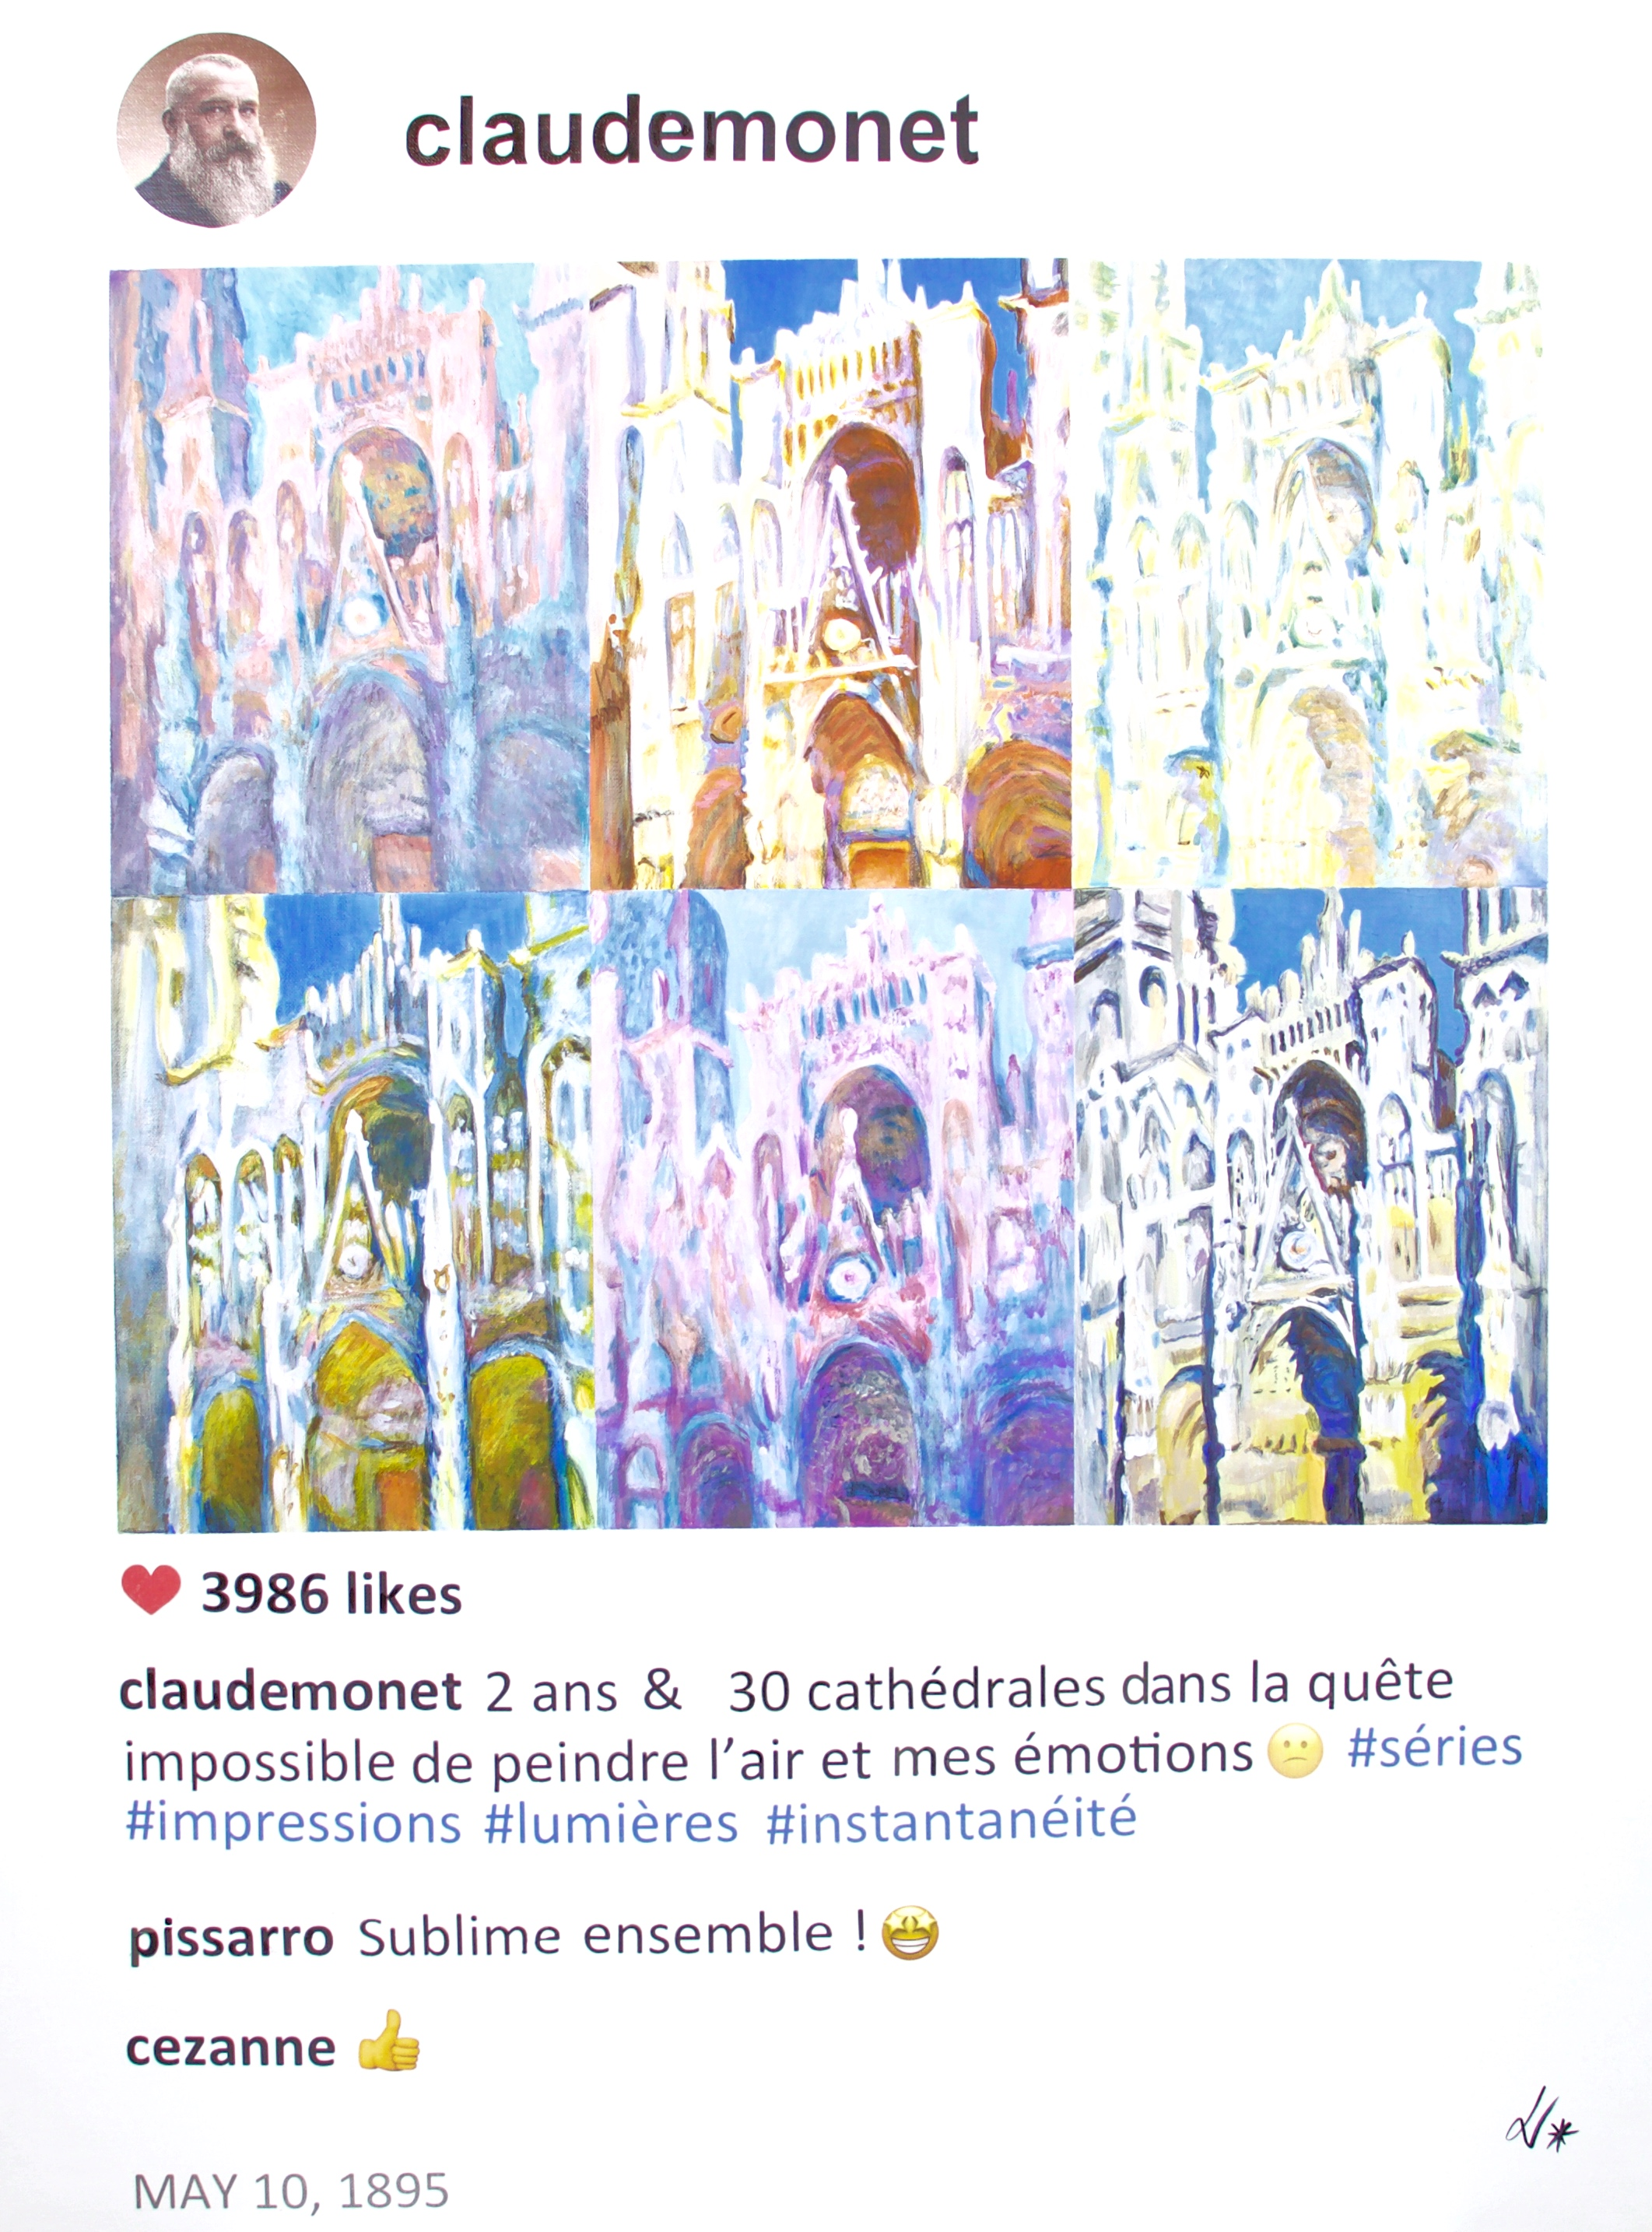 - #story.behind.the.artBetween 1892 and 94, Claude Monet painted a series of 30 cathedrals of Rouen.He had ups and downs with this series and sometimes considered abandoning it because he did